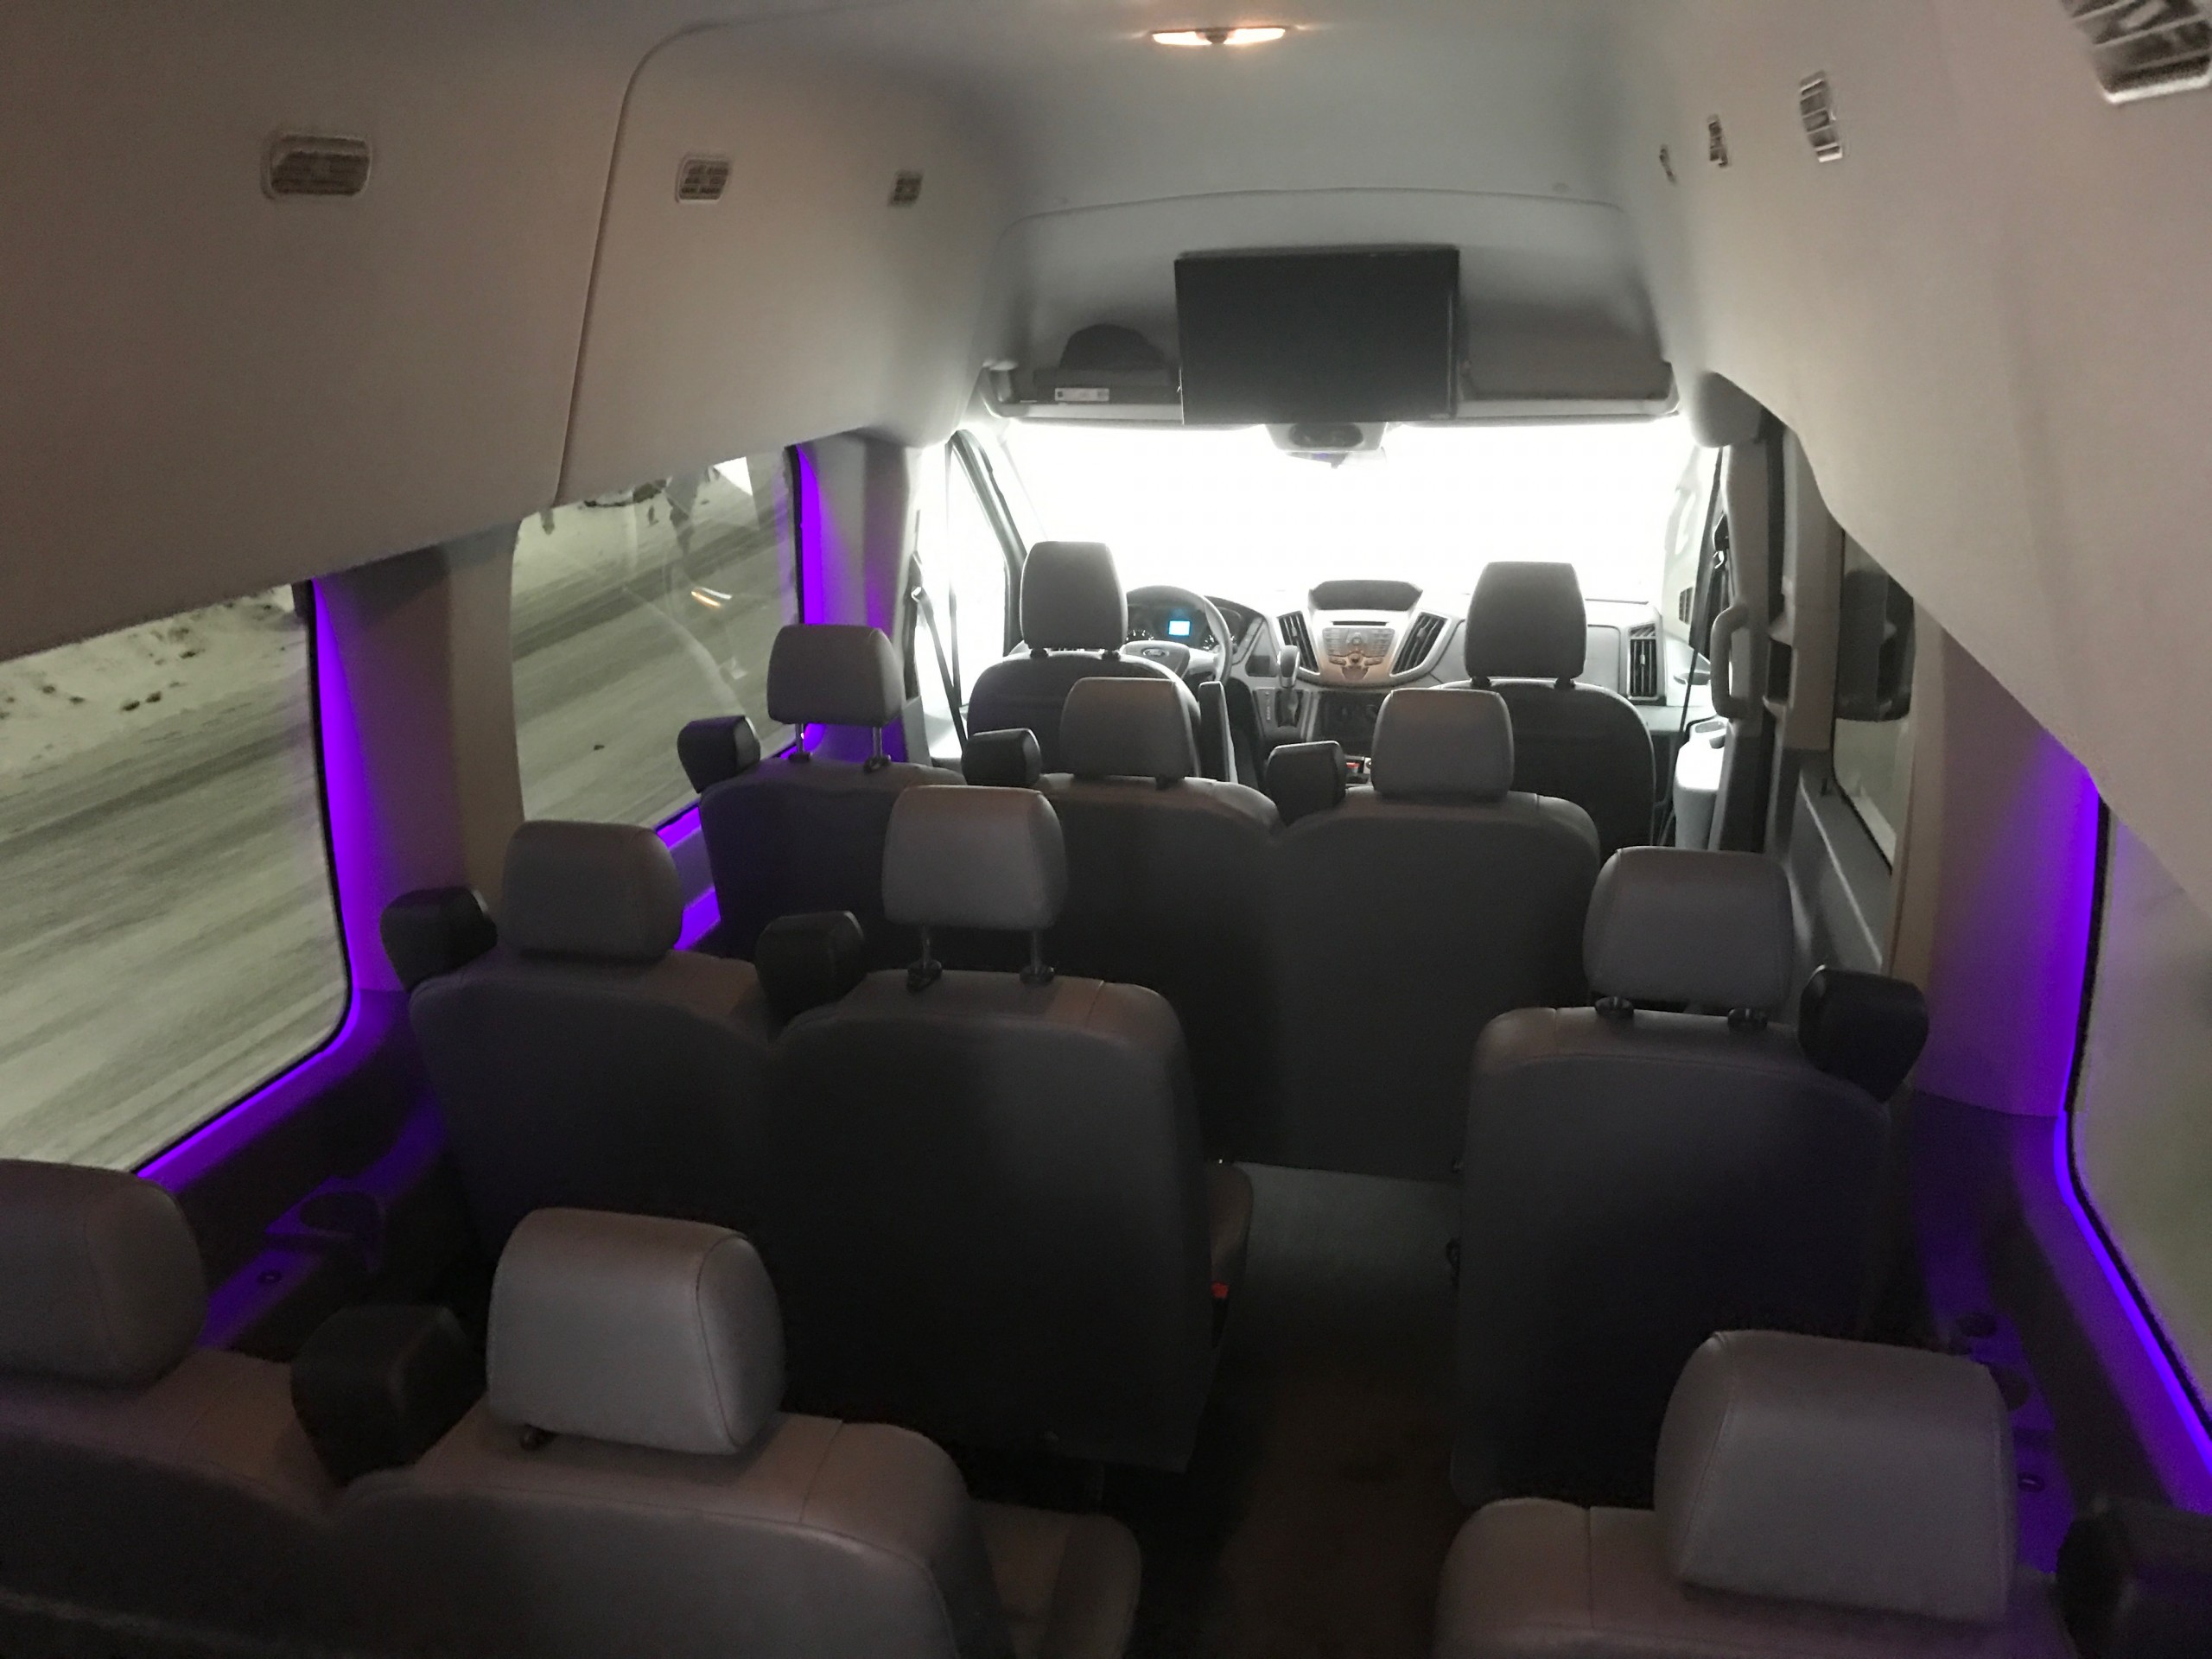 Ford E-350 4wd Passenger Van Interior Seating